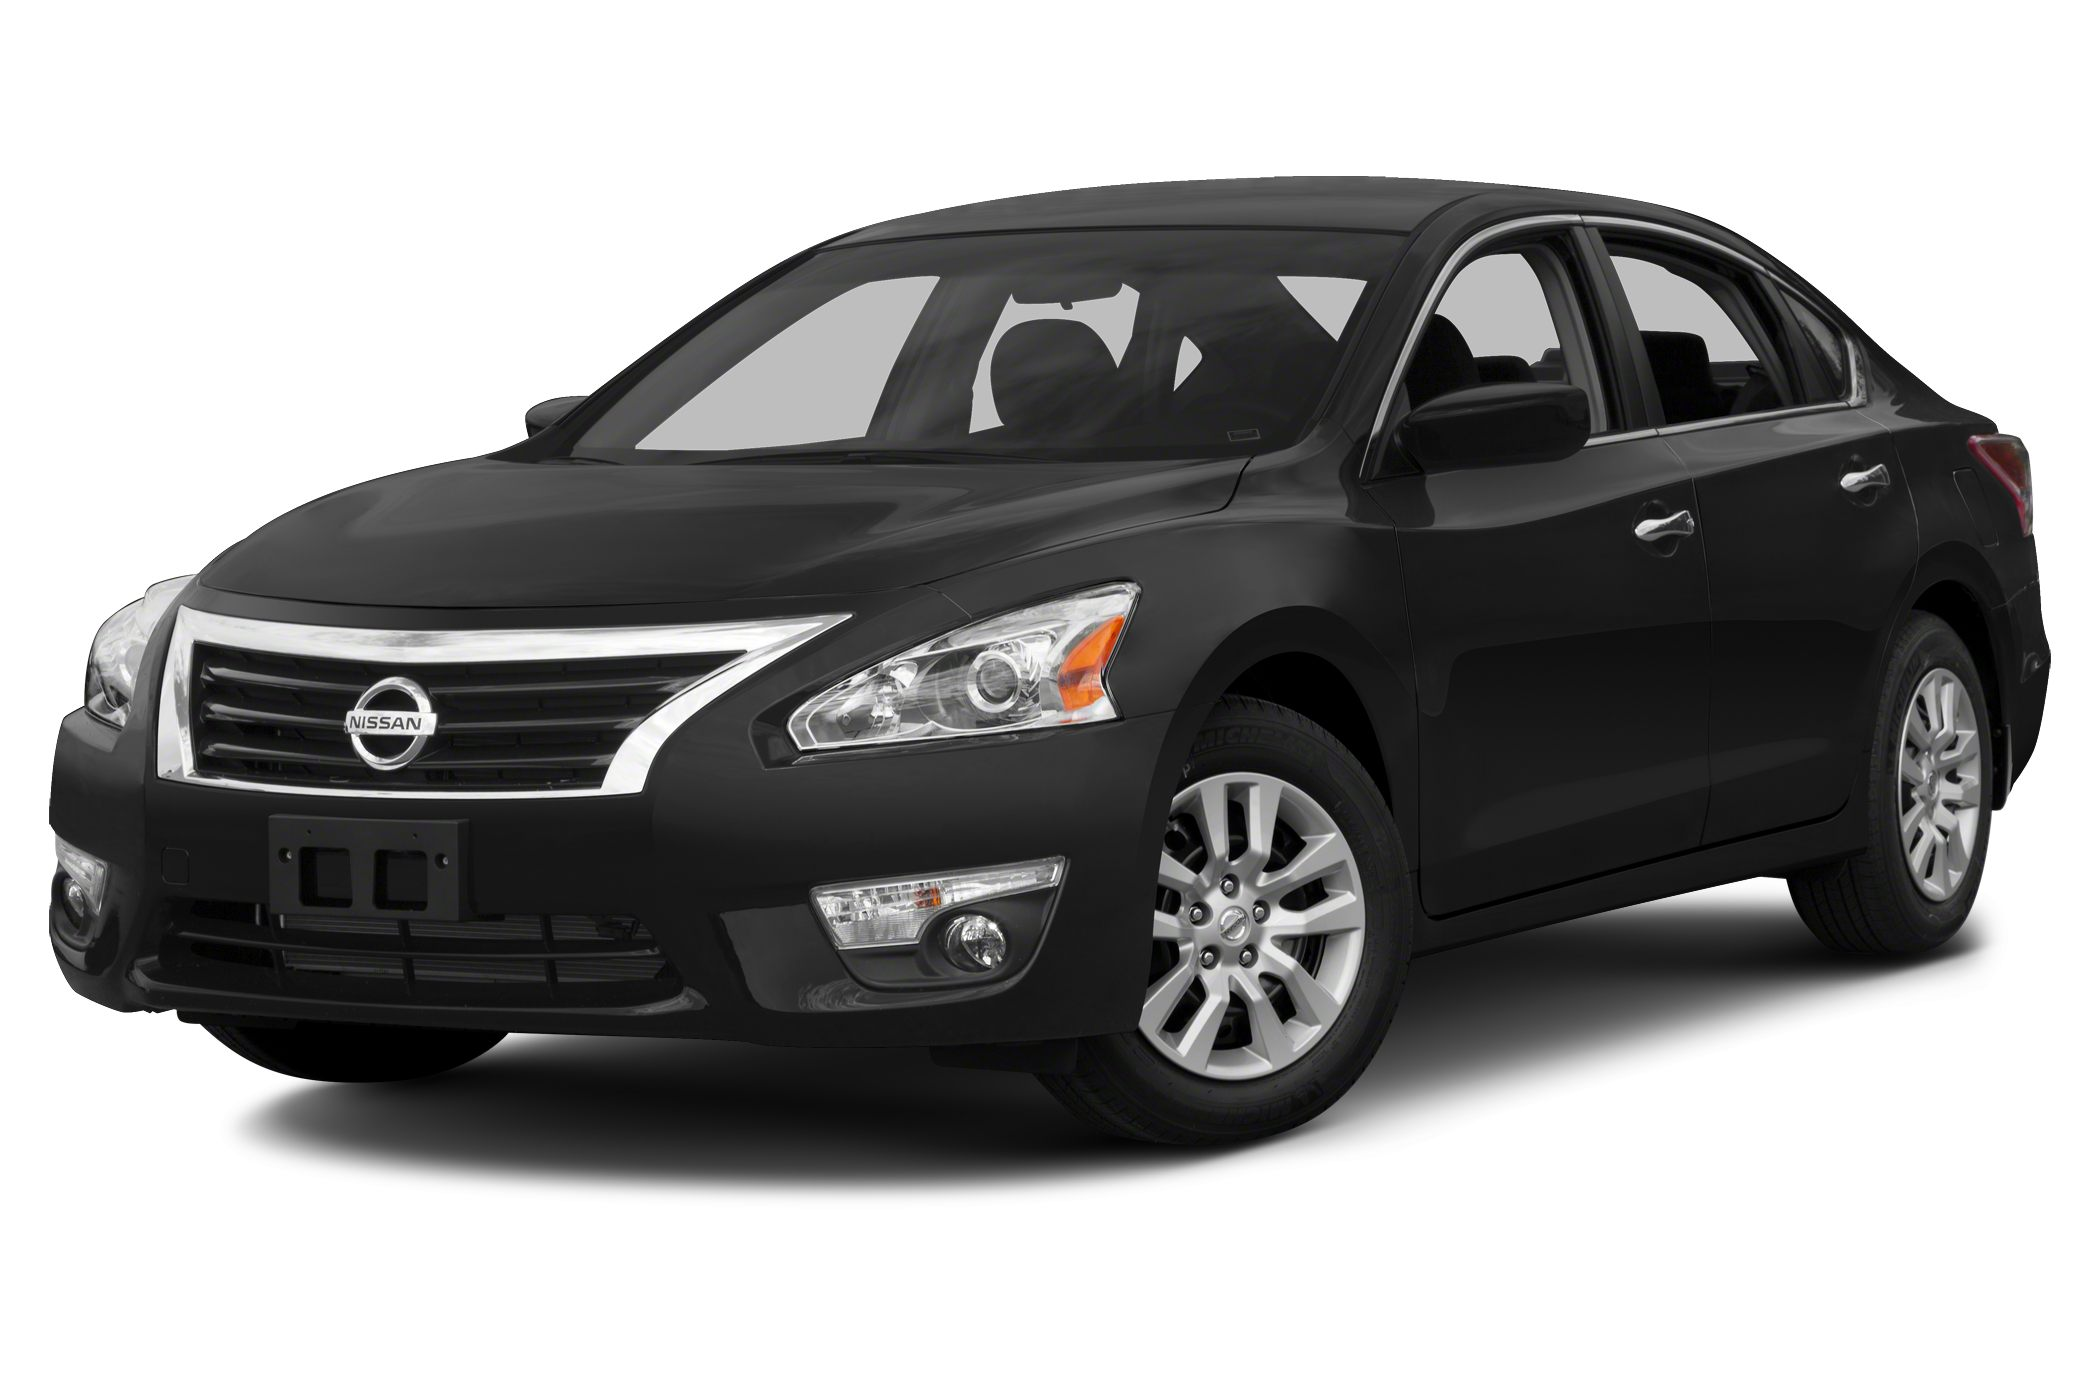 2014 Nissan Altima 2.5 Sedan for sale in Flowood for $19,995 with 42,547 miles